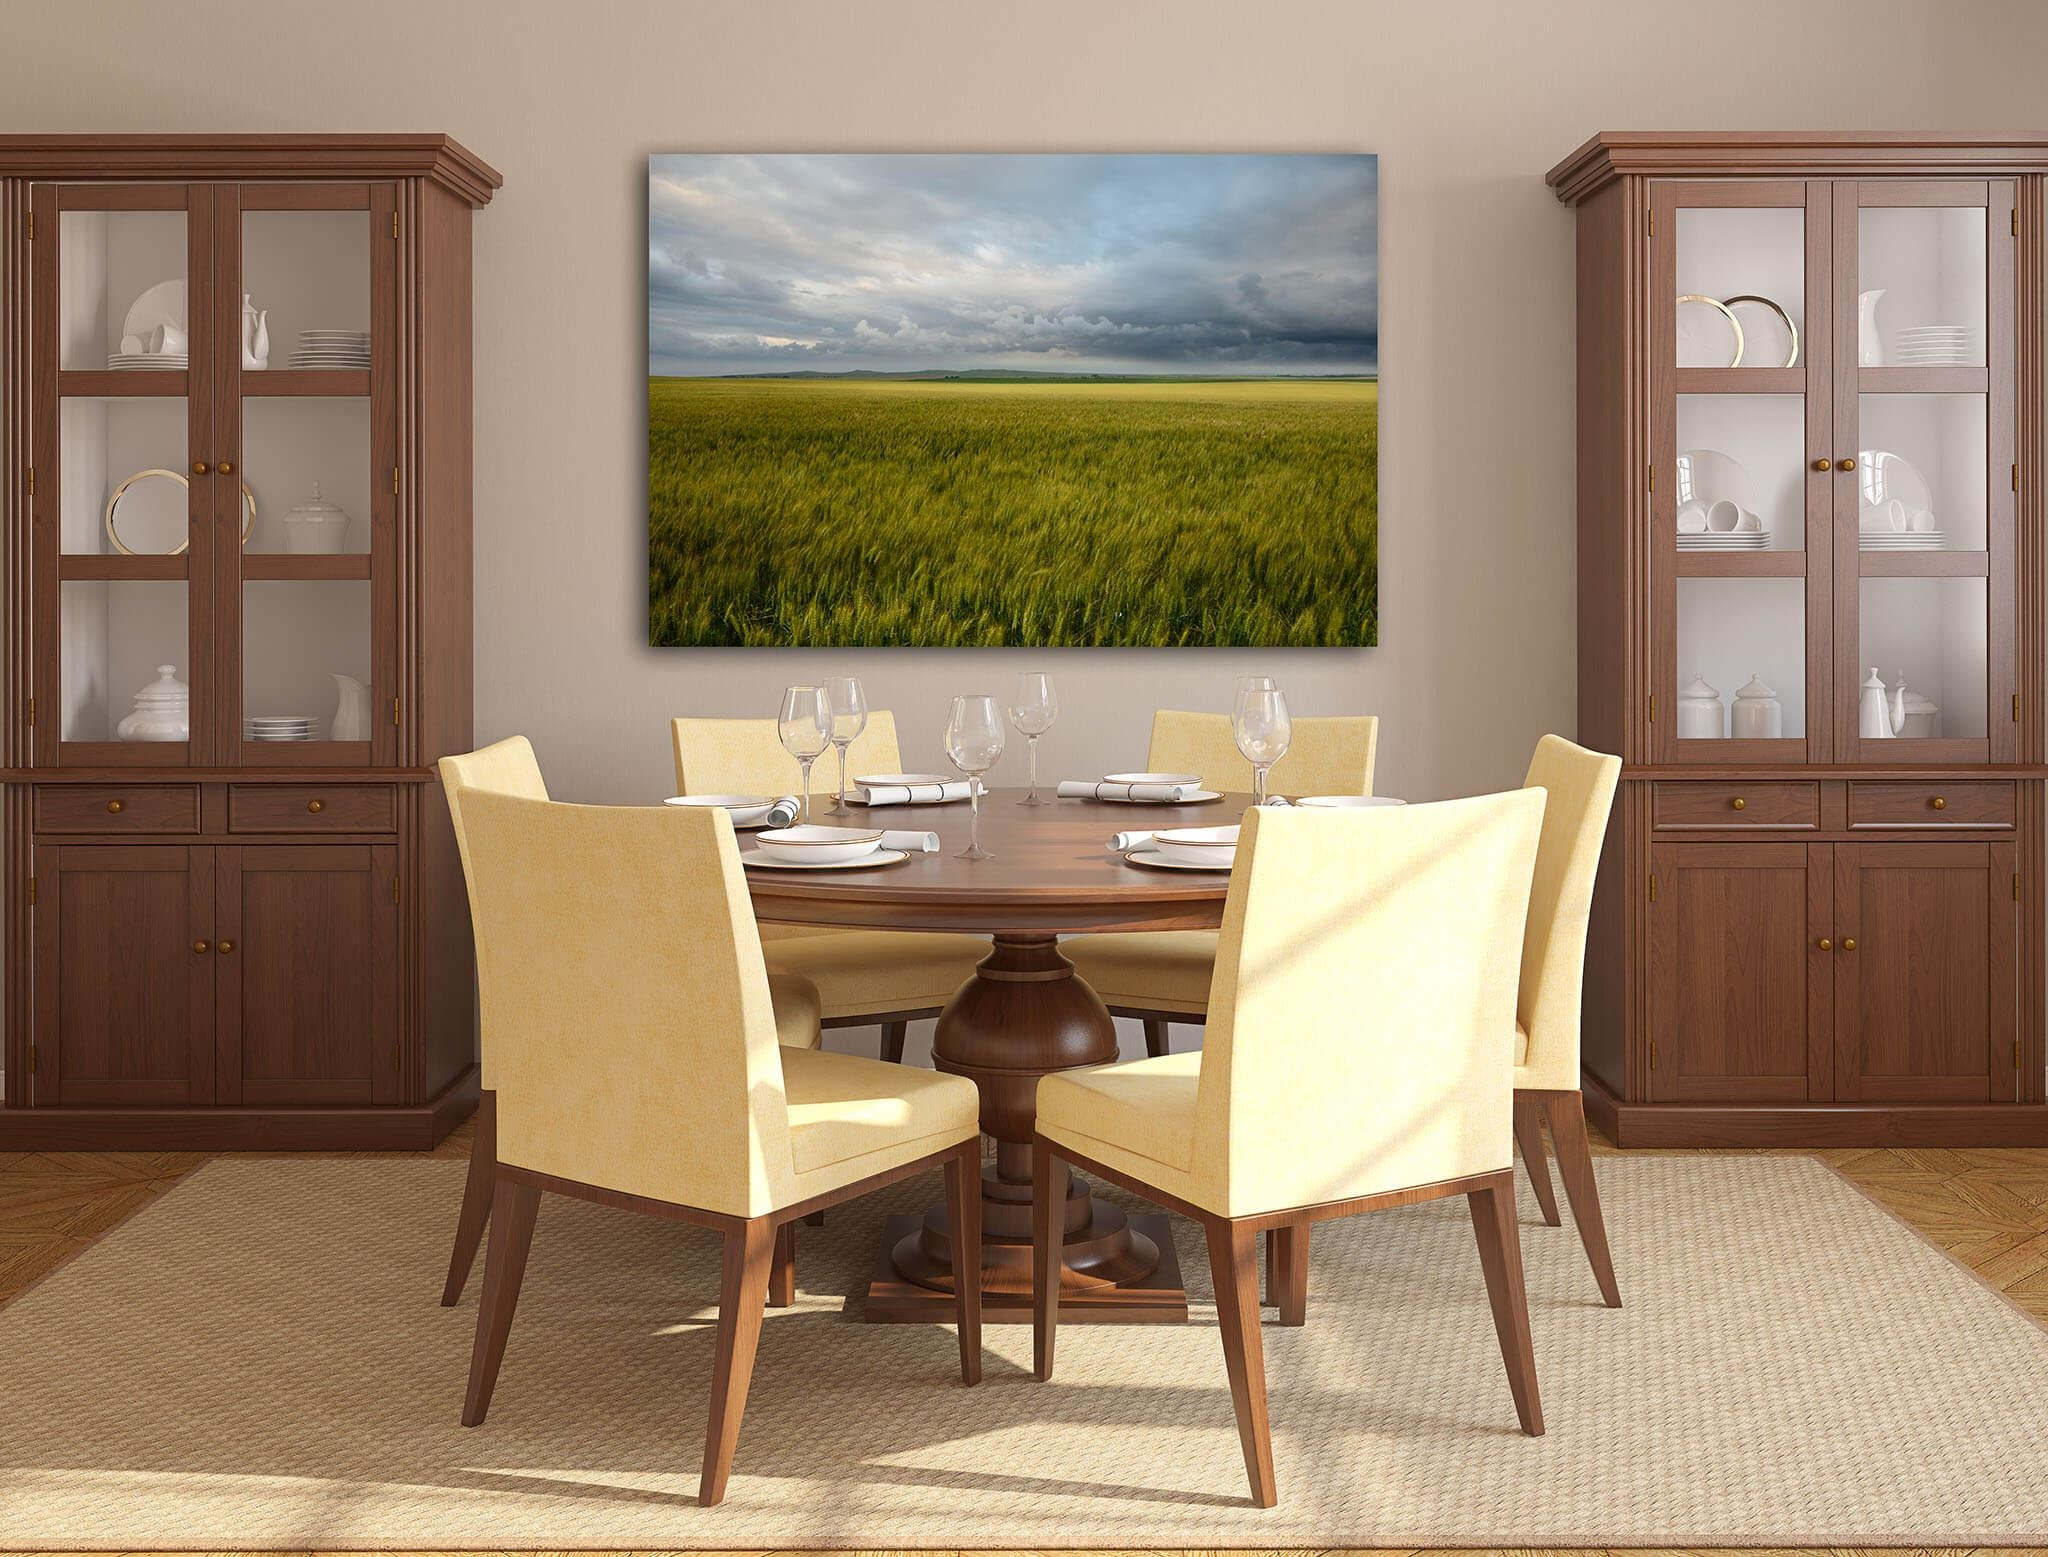 Kitchen & Dining Room Wall Art Ideas – Franklin Arts Throughout Art For Dining Room Walls (Image 17 of 20)